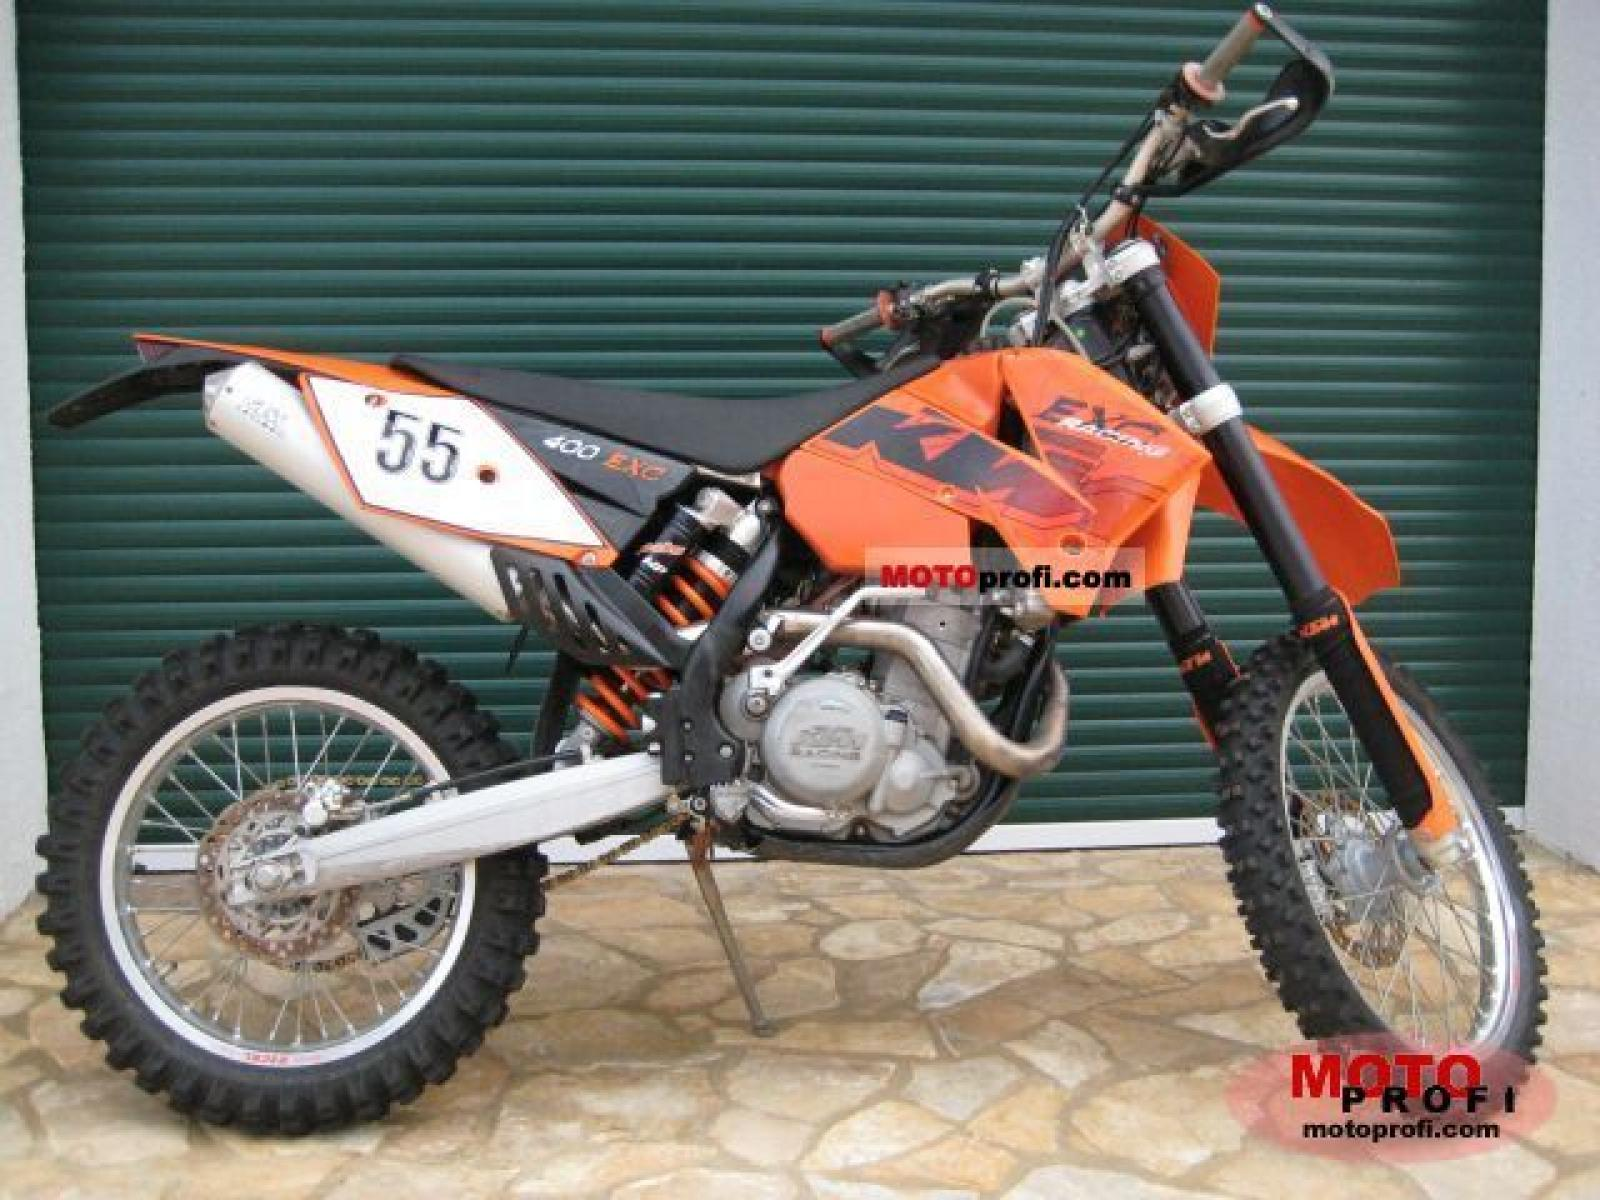 KTM 400 EXC Racing 2005 images #86409